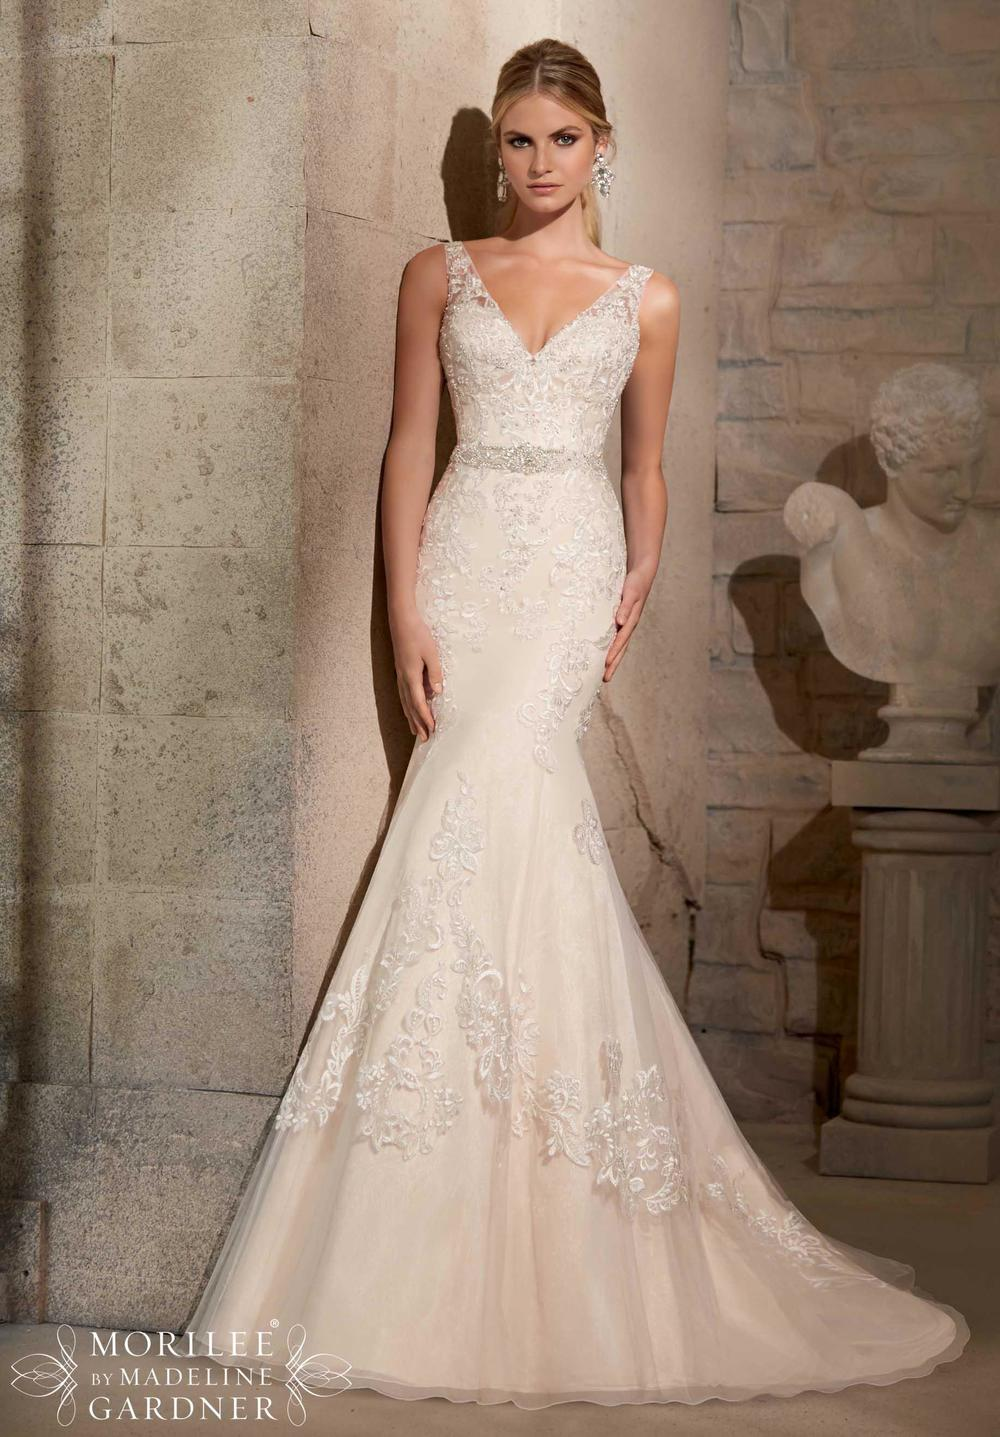 Top 5 designer wedding gowns by mori lee bridal fashion for Custom wedding dress online